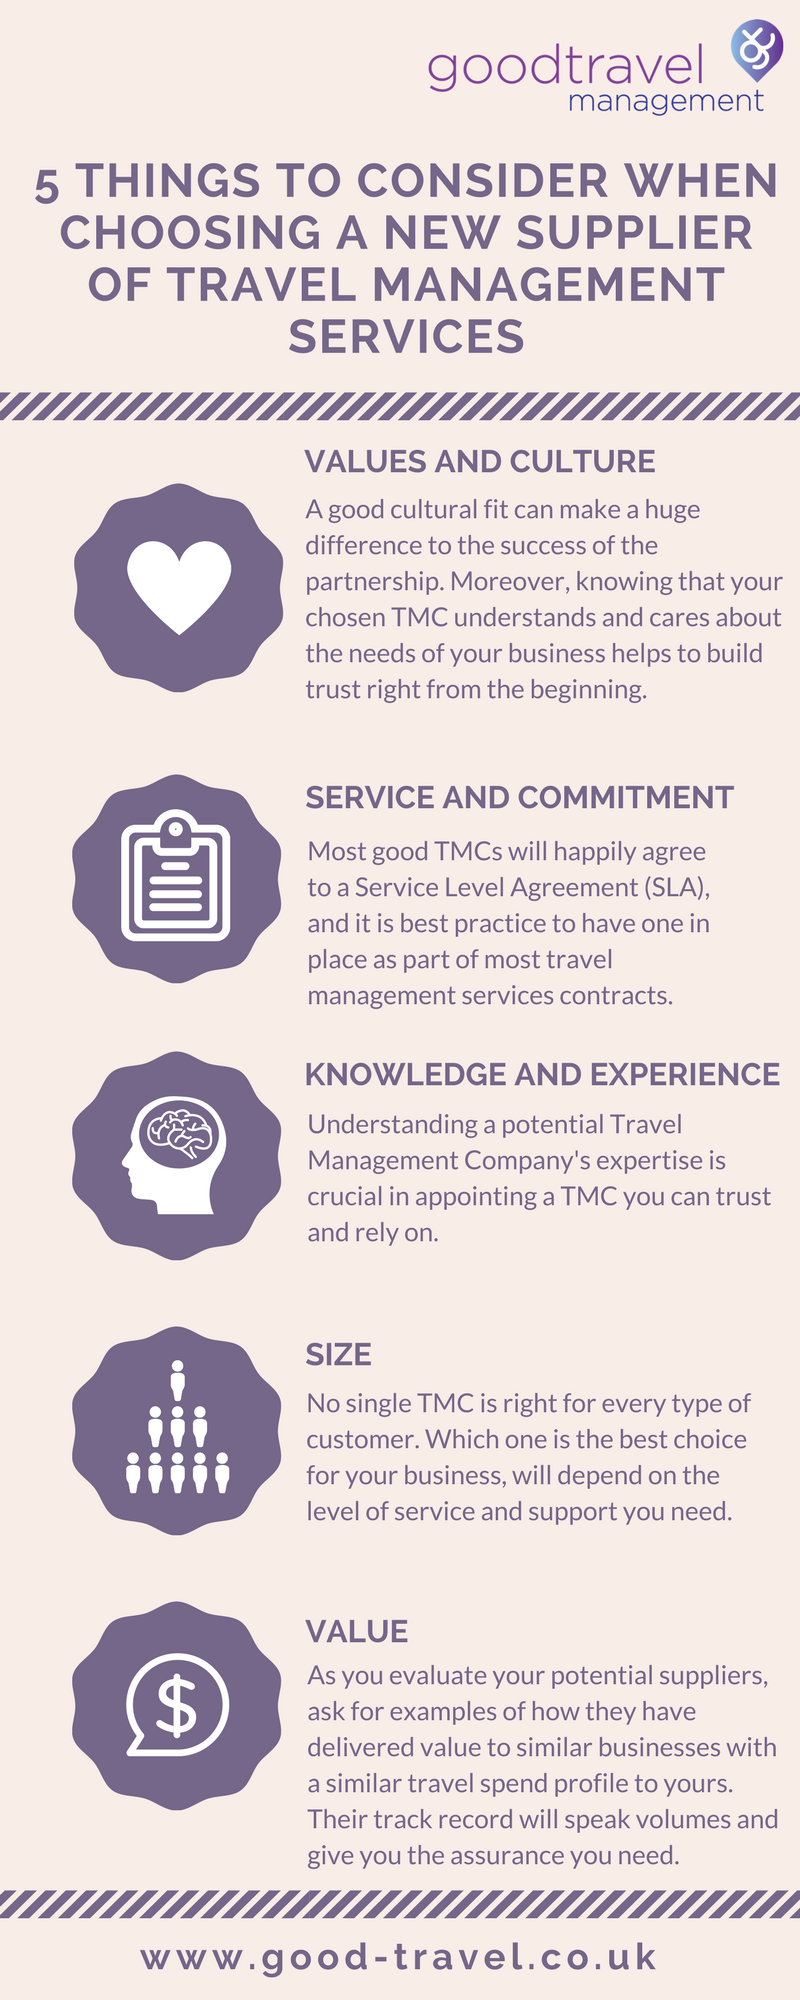 Infographic - 5 things to consider when choosing a new supplier of Travel Management Services